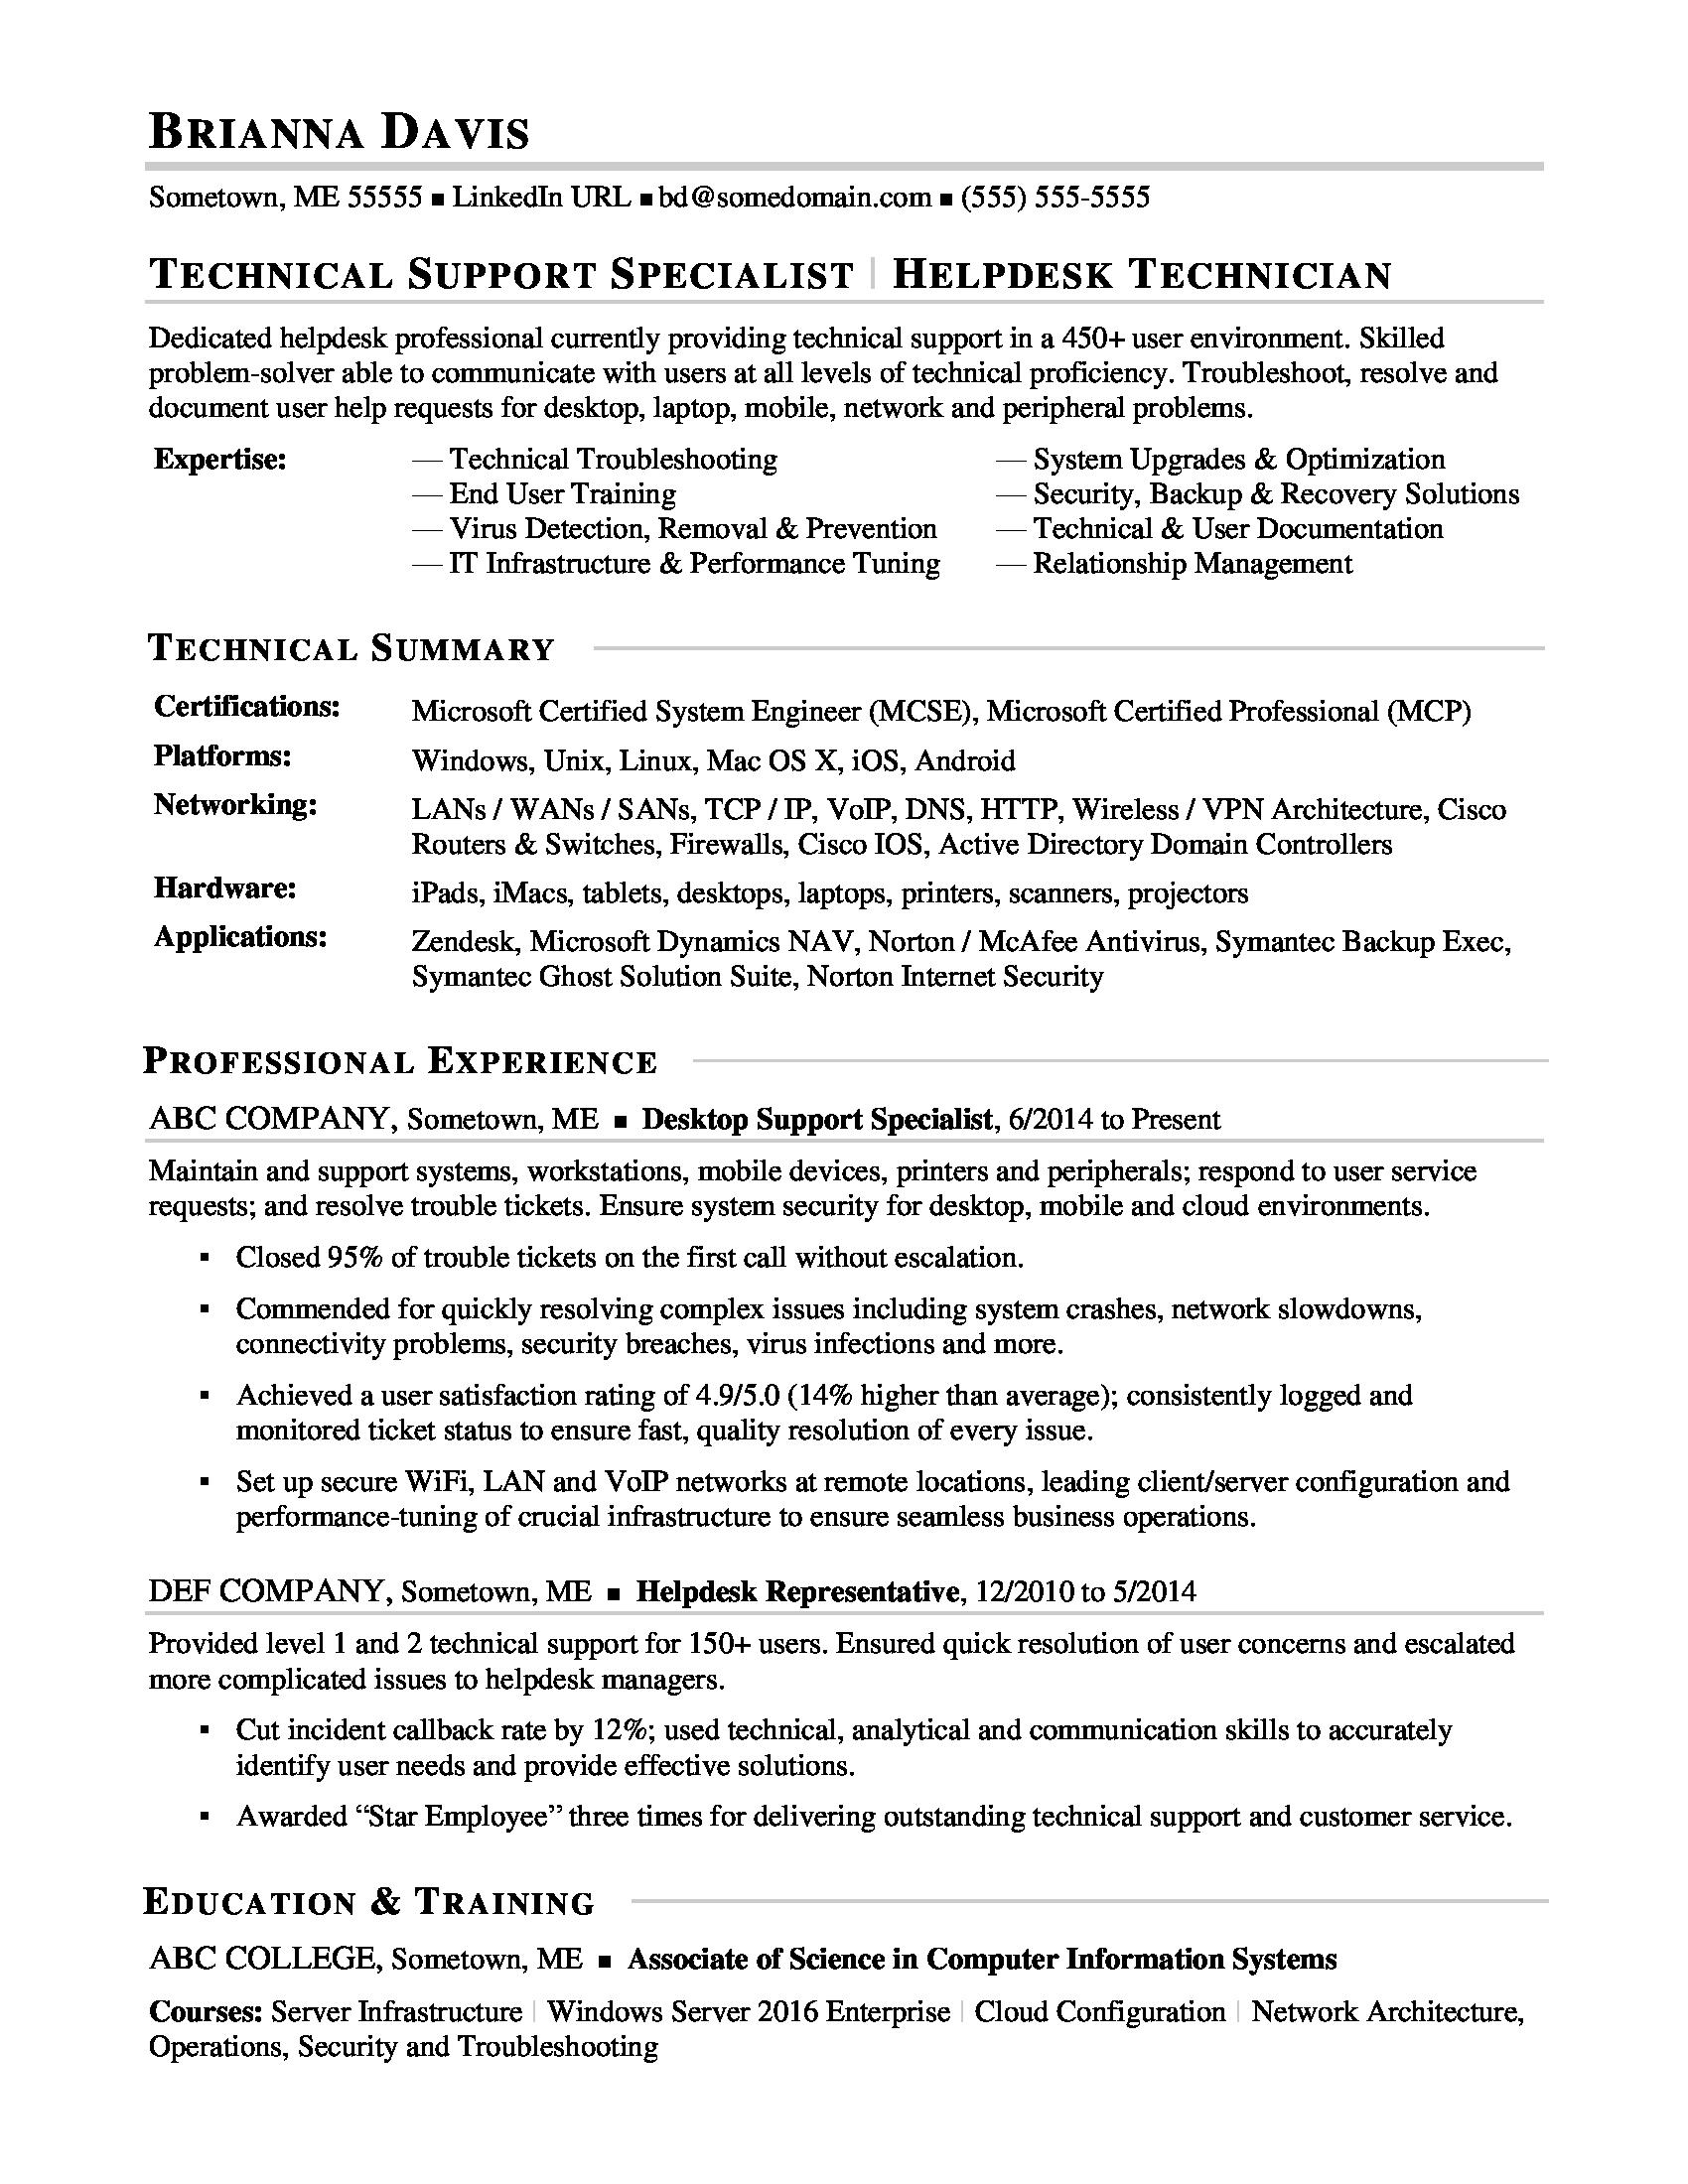 sample resume for experienced it help desk employee monster train new employees on Resume Help Train New Employees On Resume